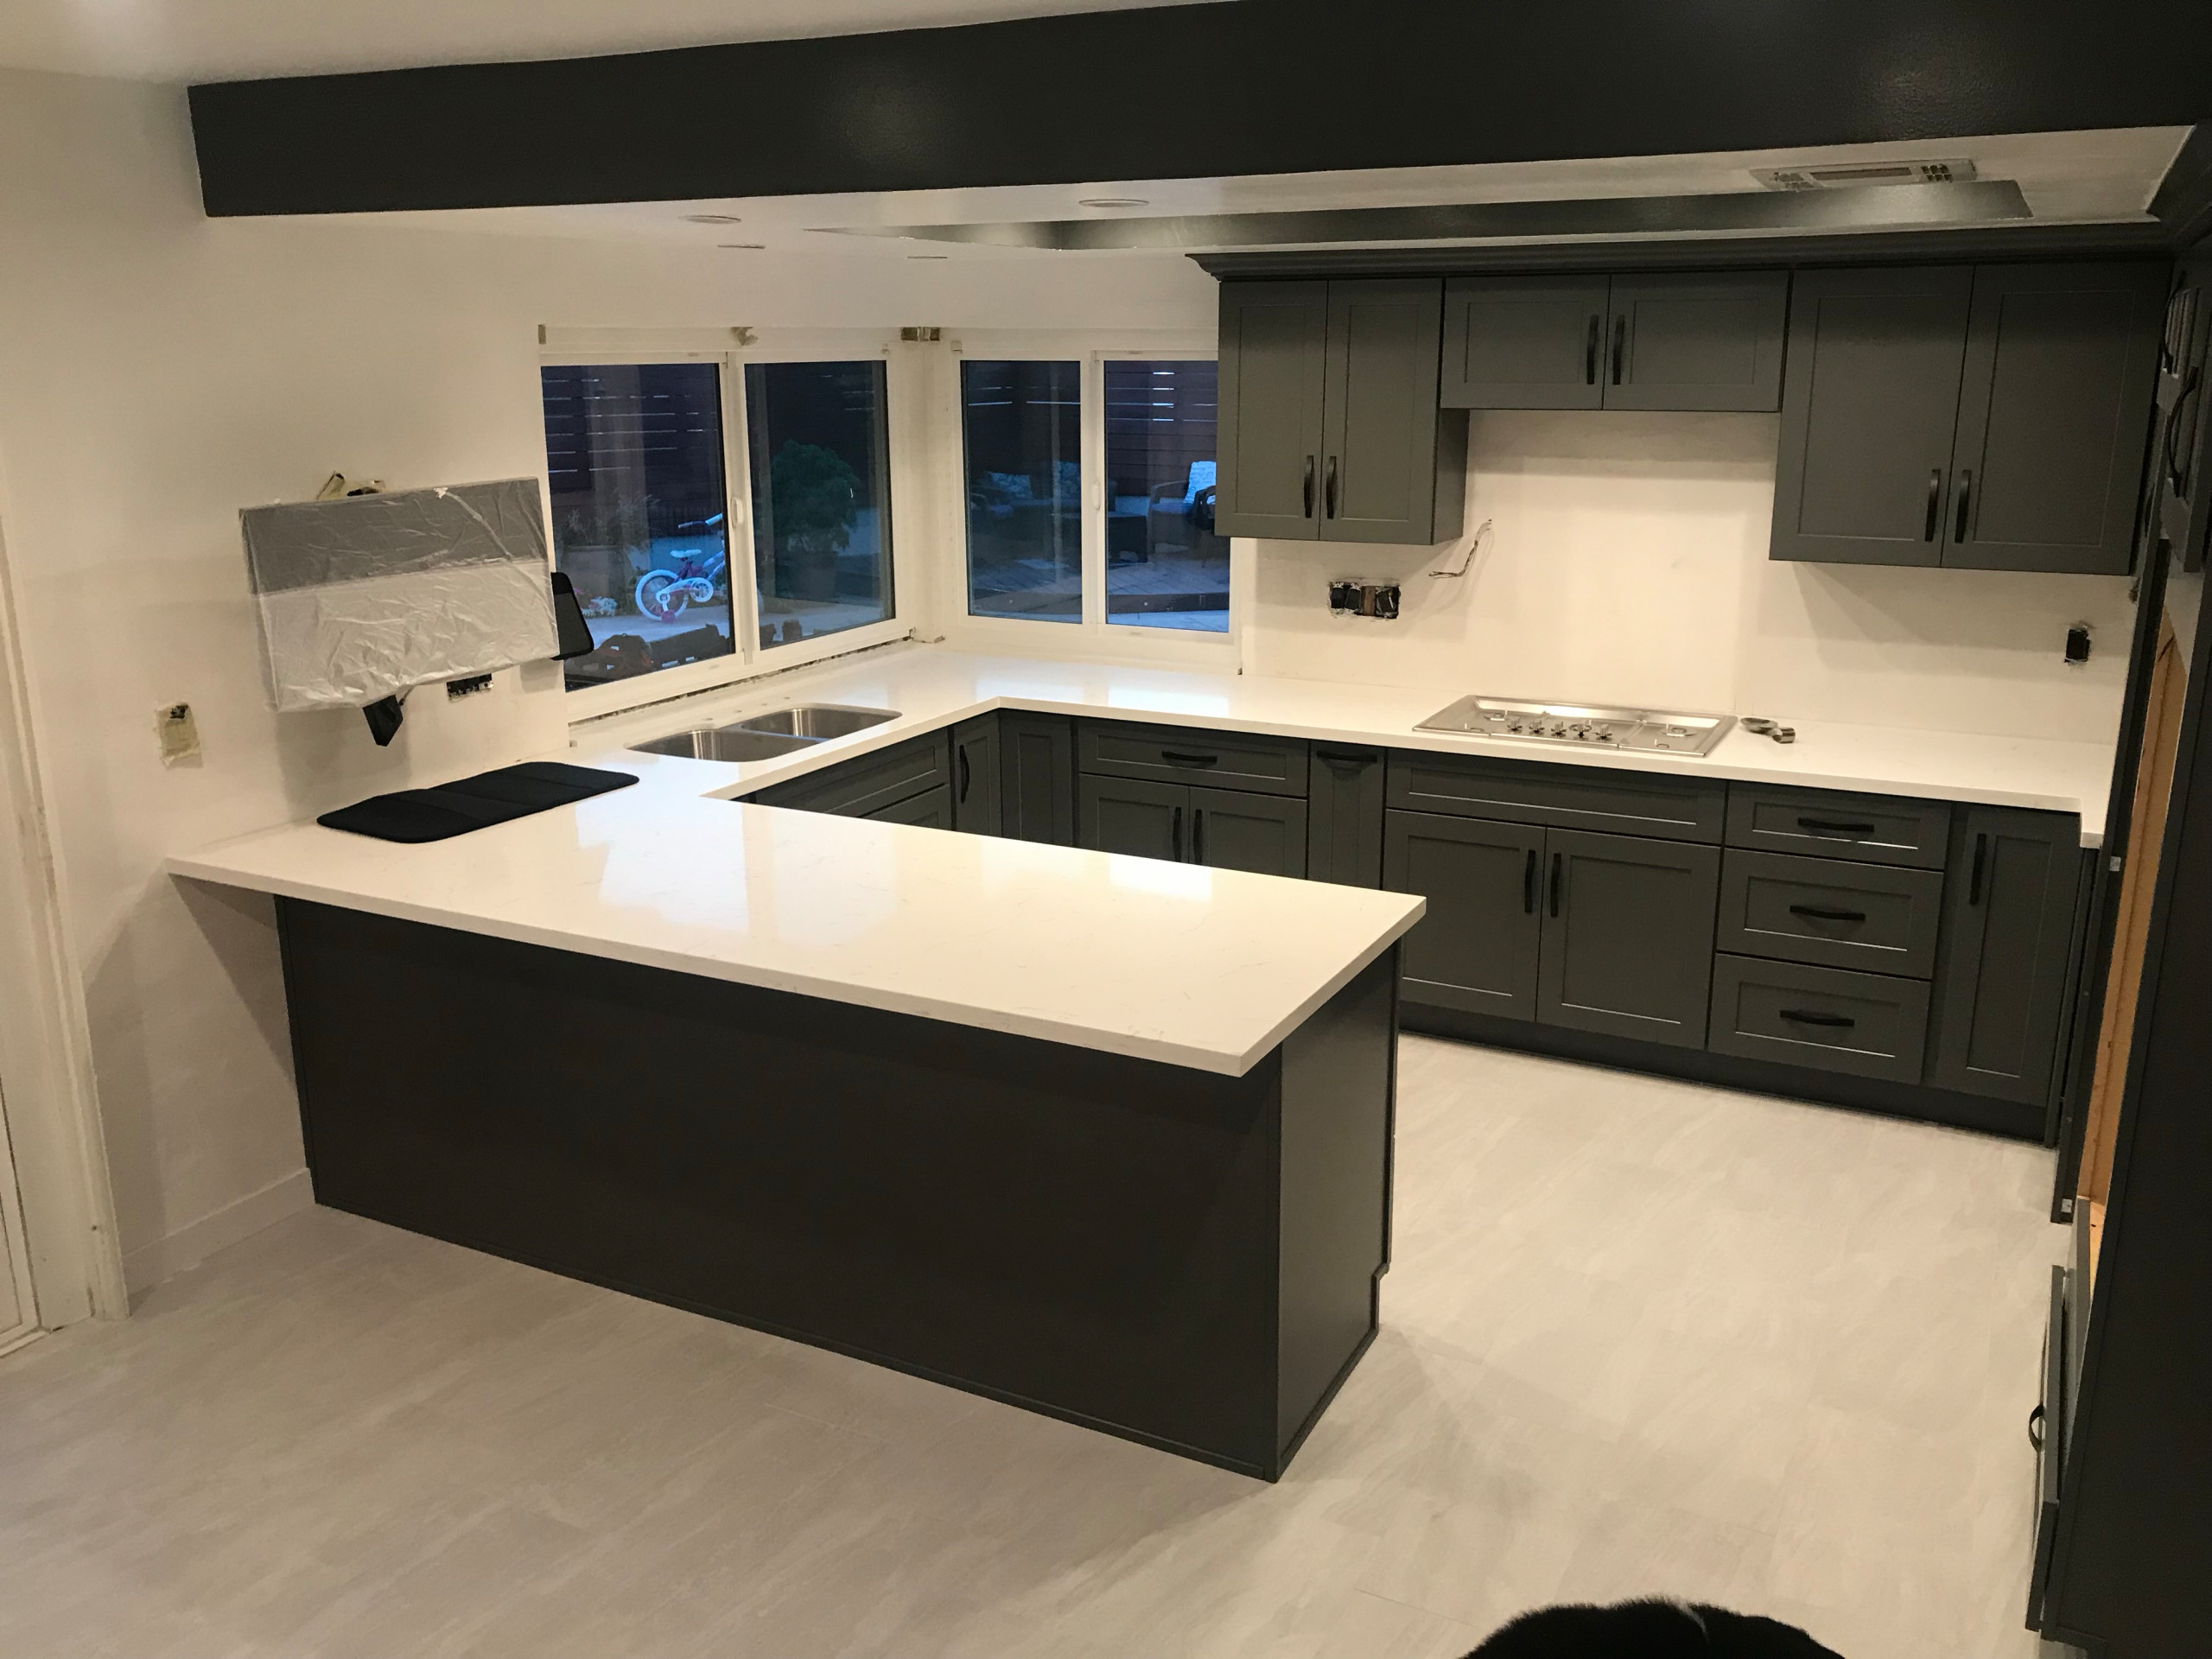 Kitchen cabinets and counter 2